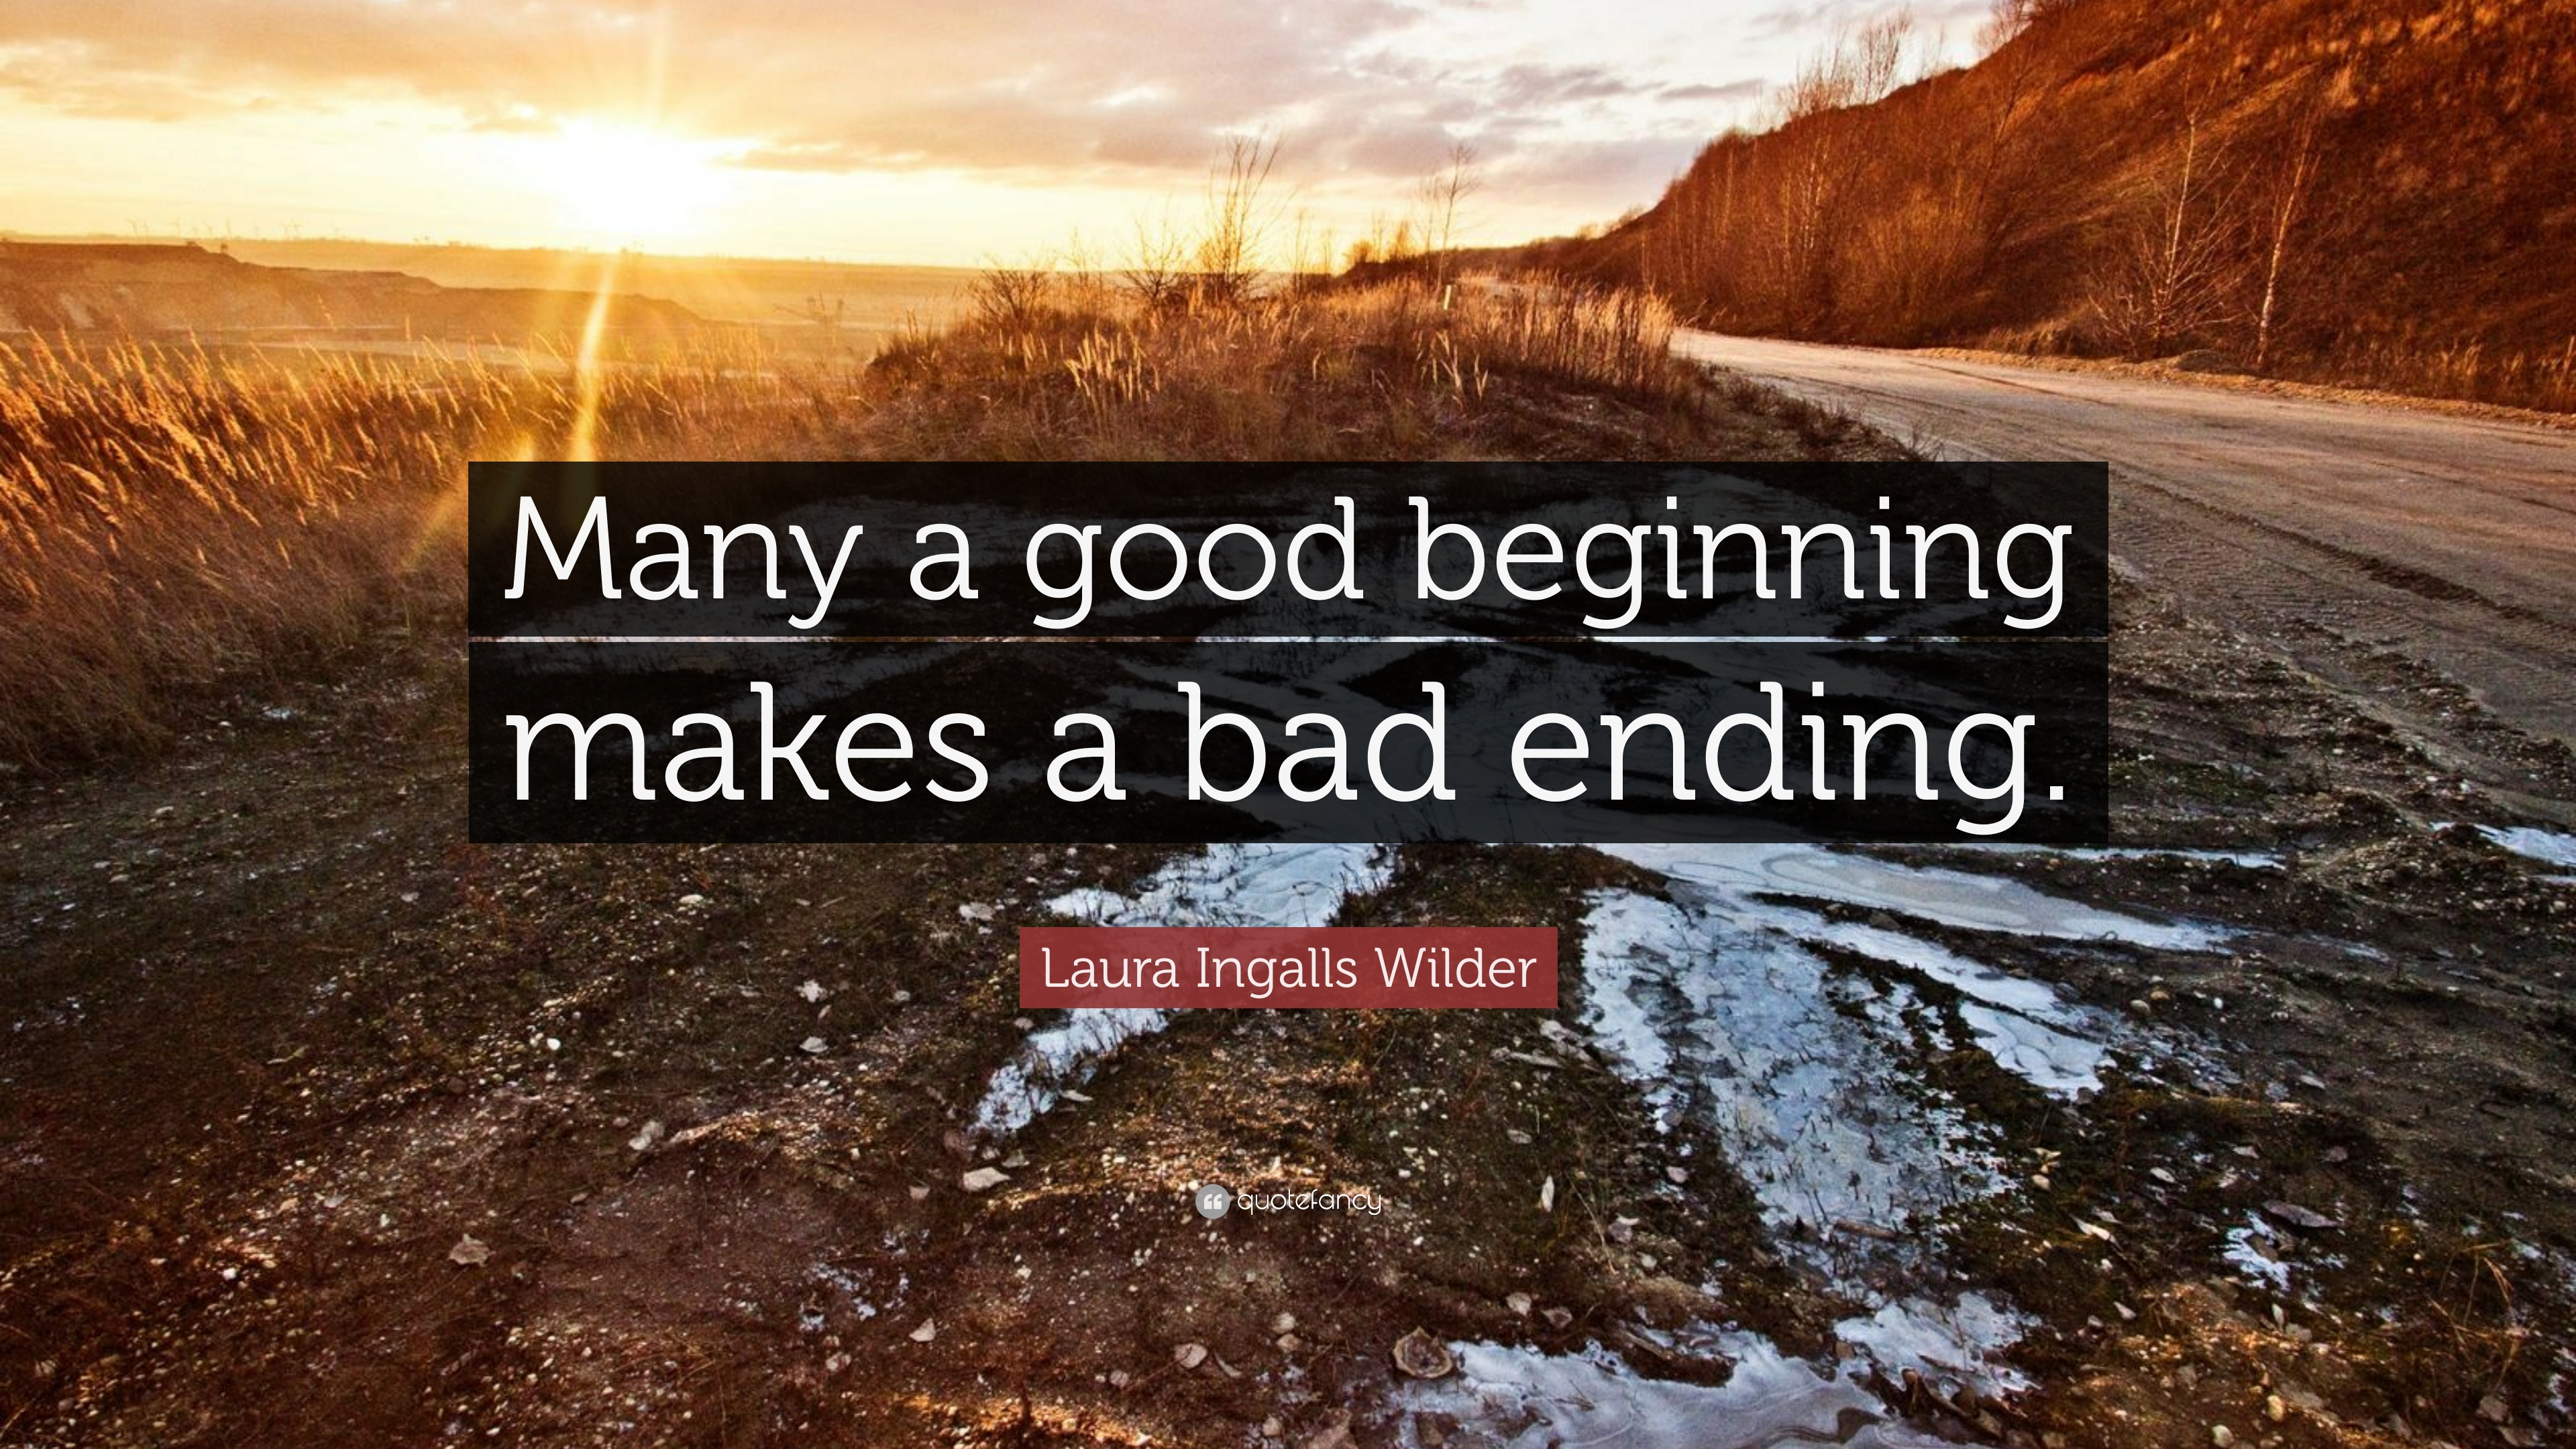 a bad beginning makes a bad ending What does the proverb a bad beginning makes a bad ending mean learn the meaning, expansion, explanation, and origin of proverb a bad beginning makes a bad ending.